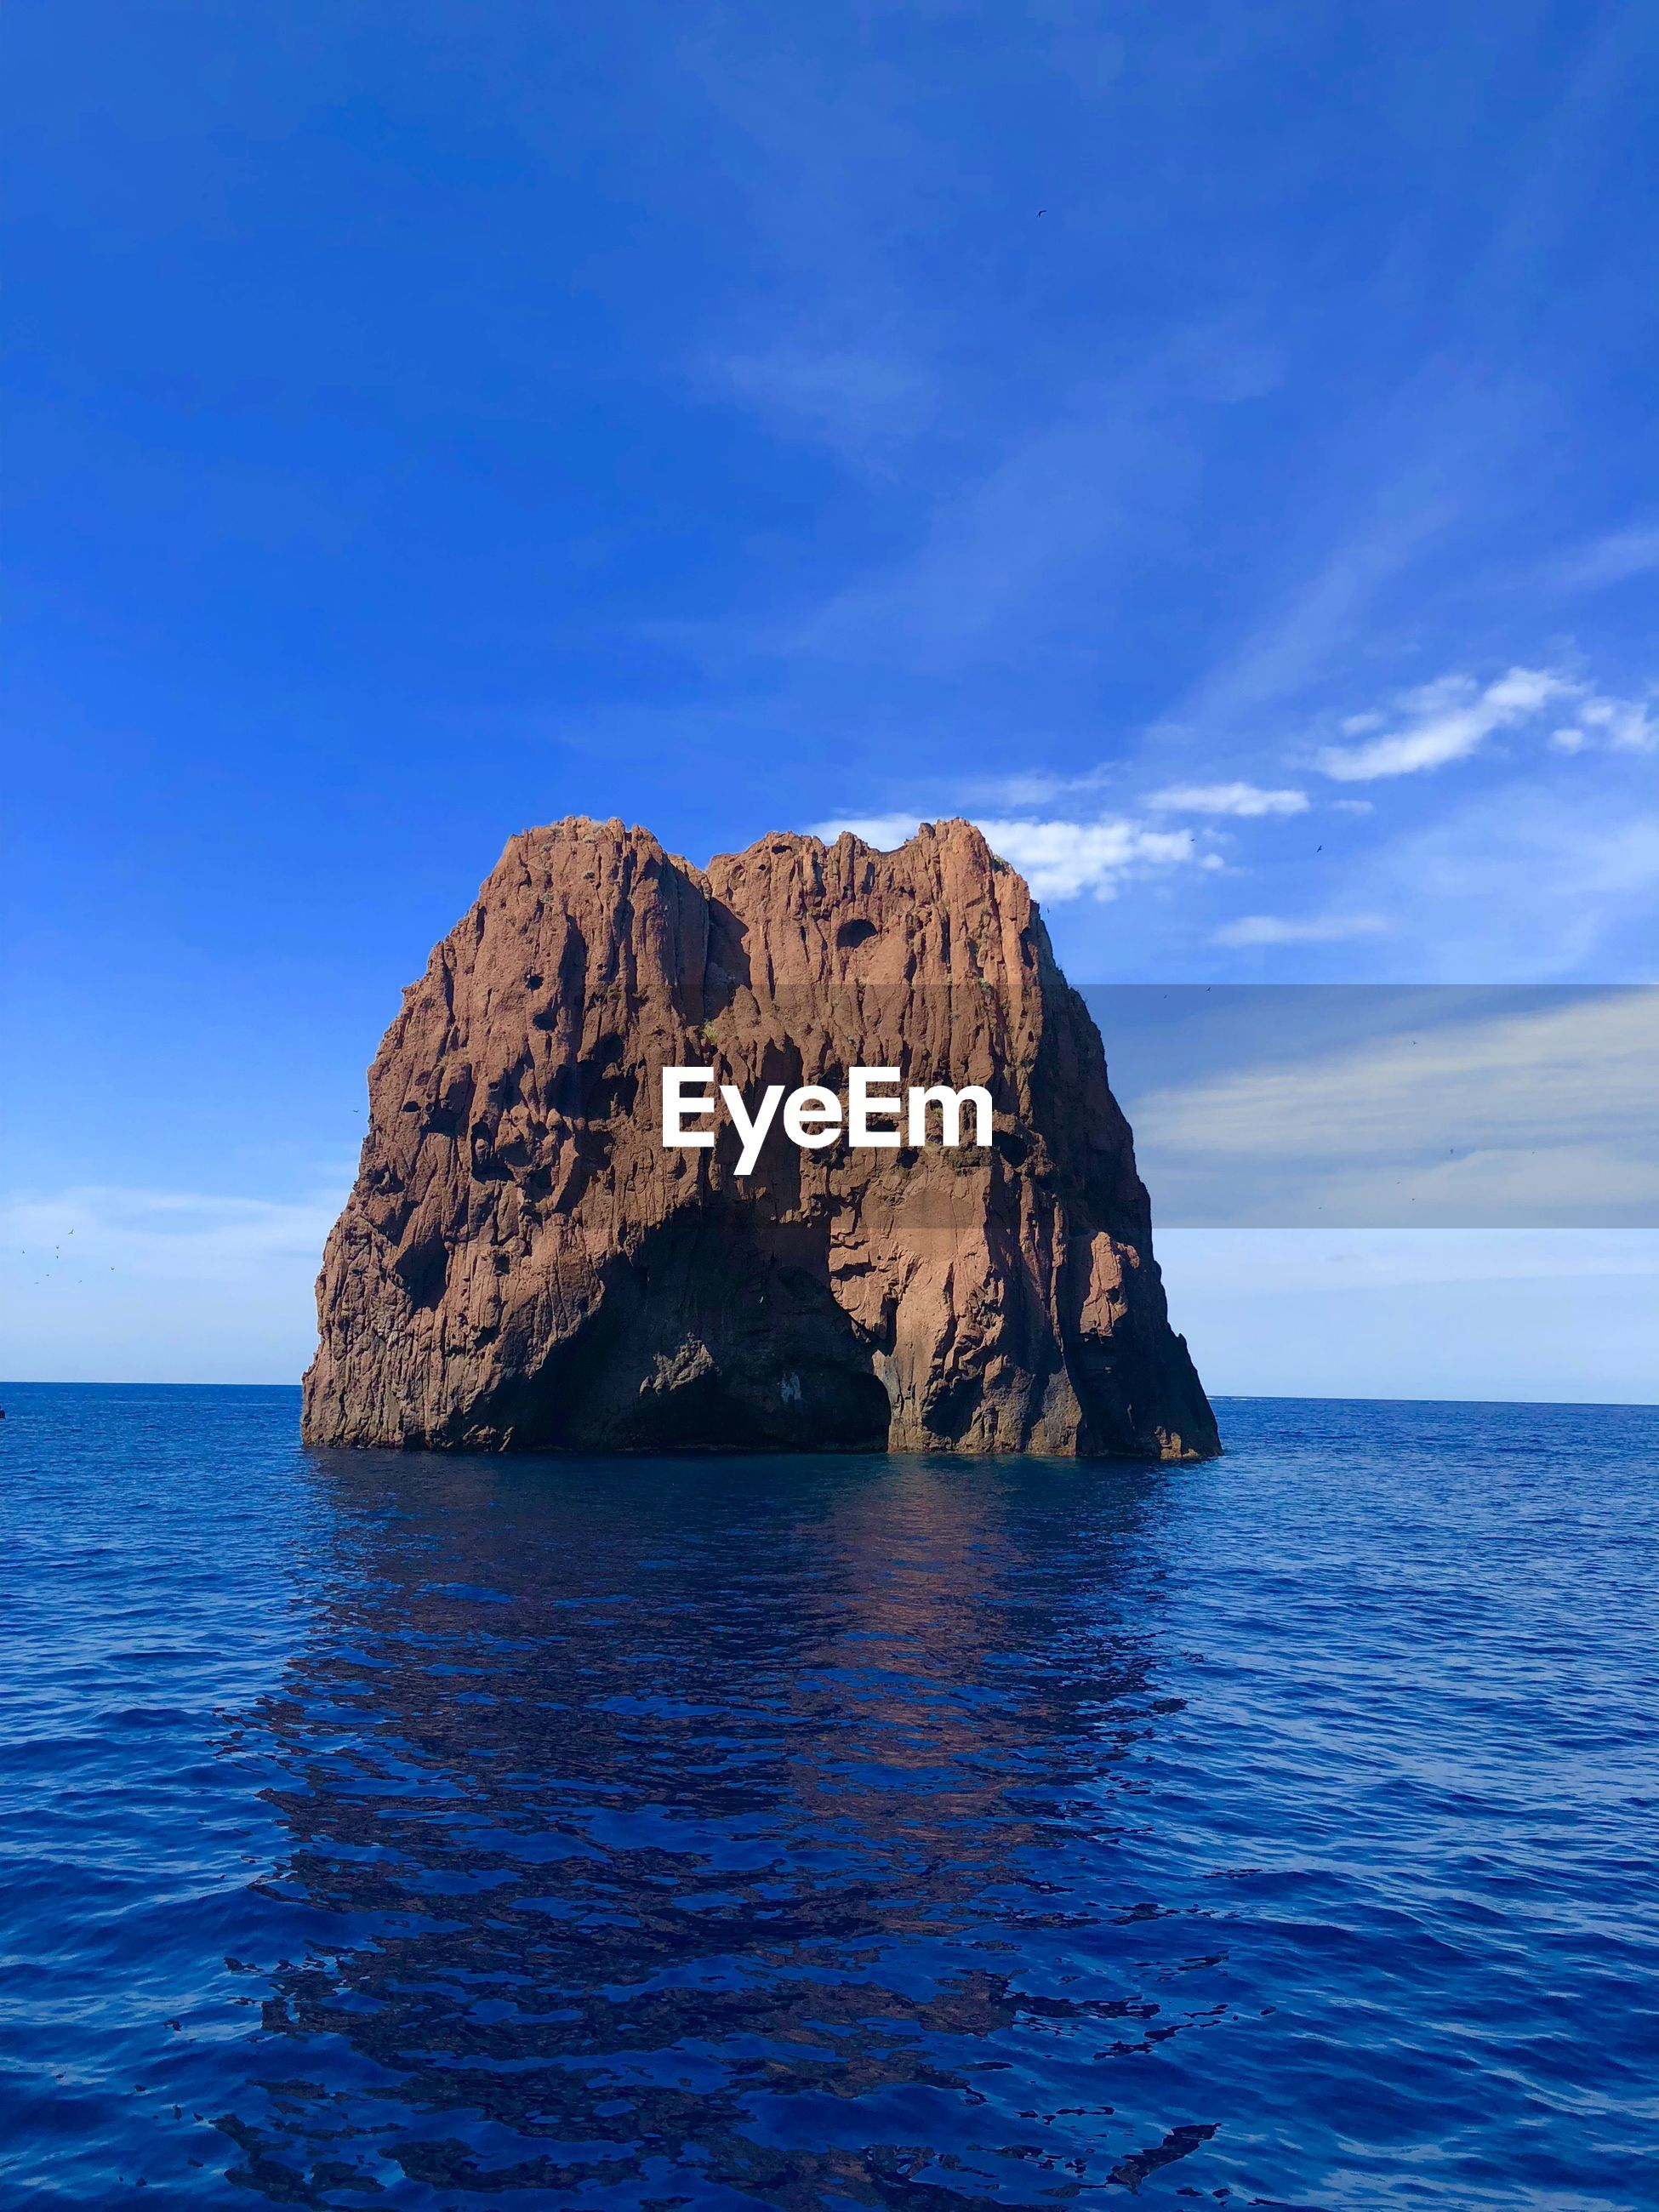 SCENIC VIEW OF ROCK FORMATION IN SEA AGAINST BLUE SKY